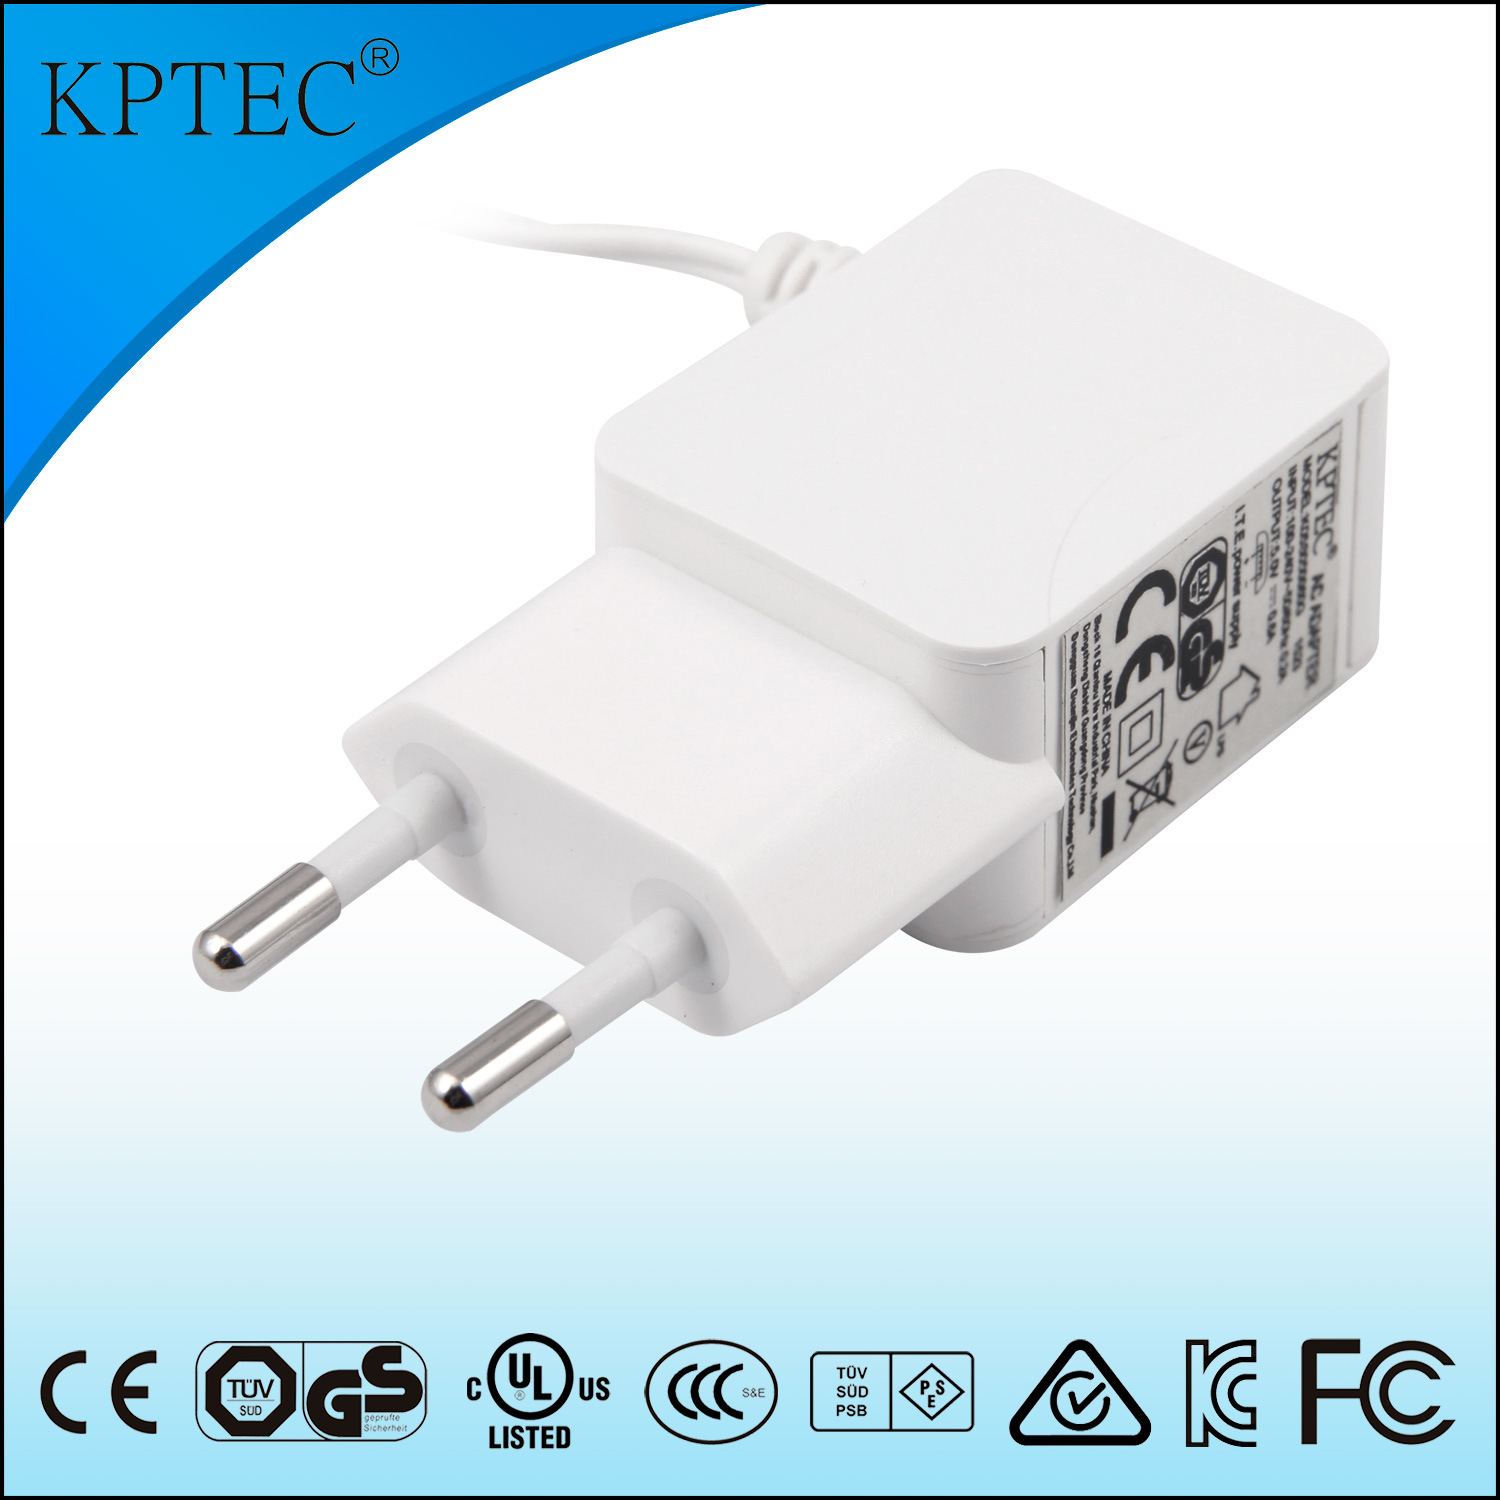 5W AC Adapter with GS Certificate